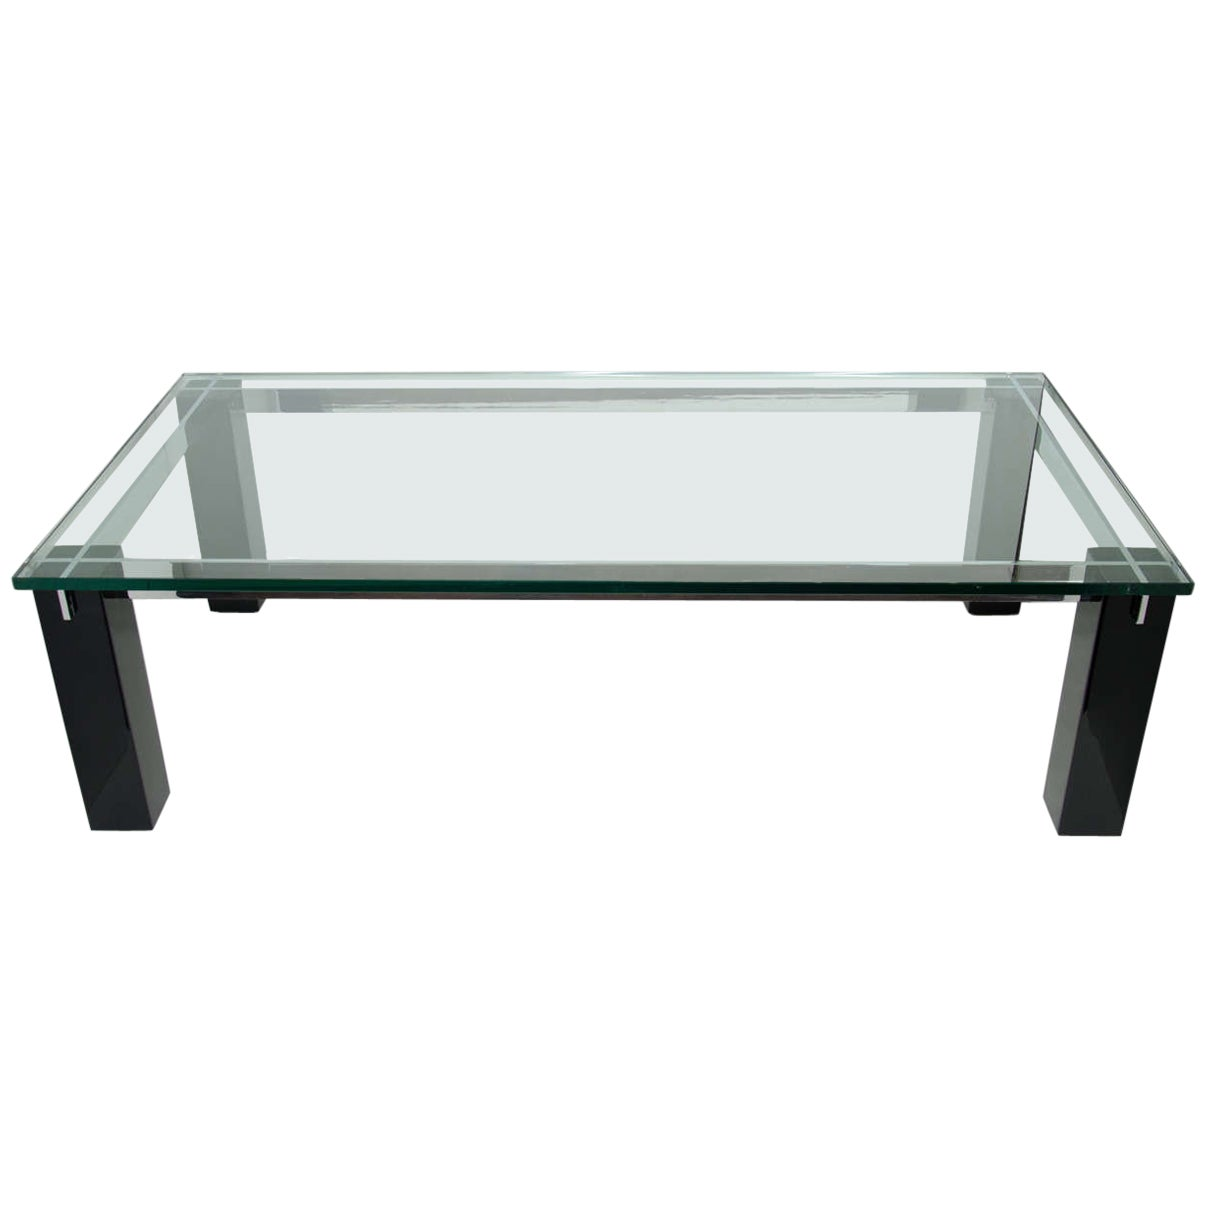 Italian Mid-Century Modern Architectural Coffee Table